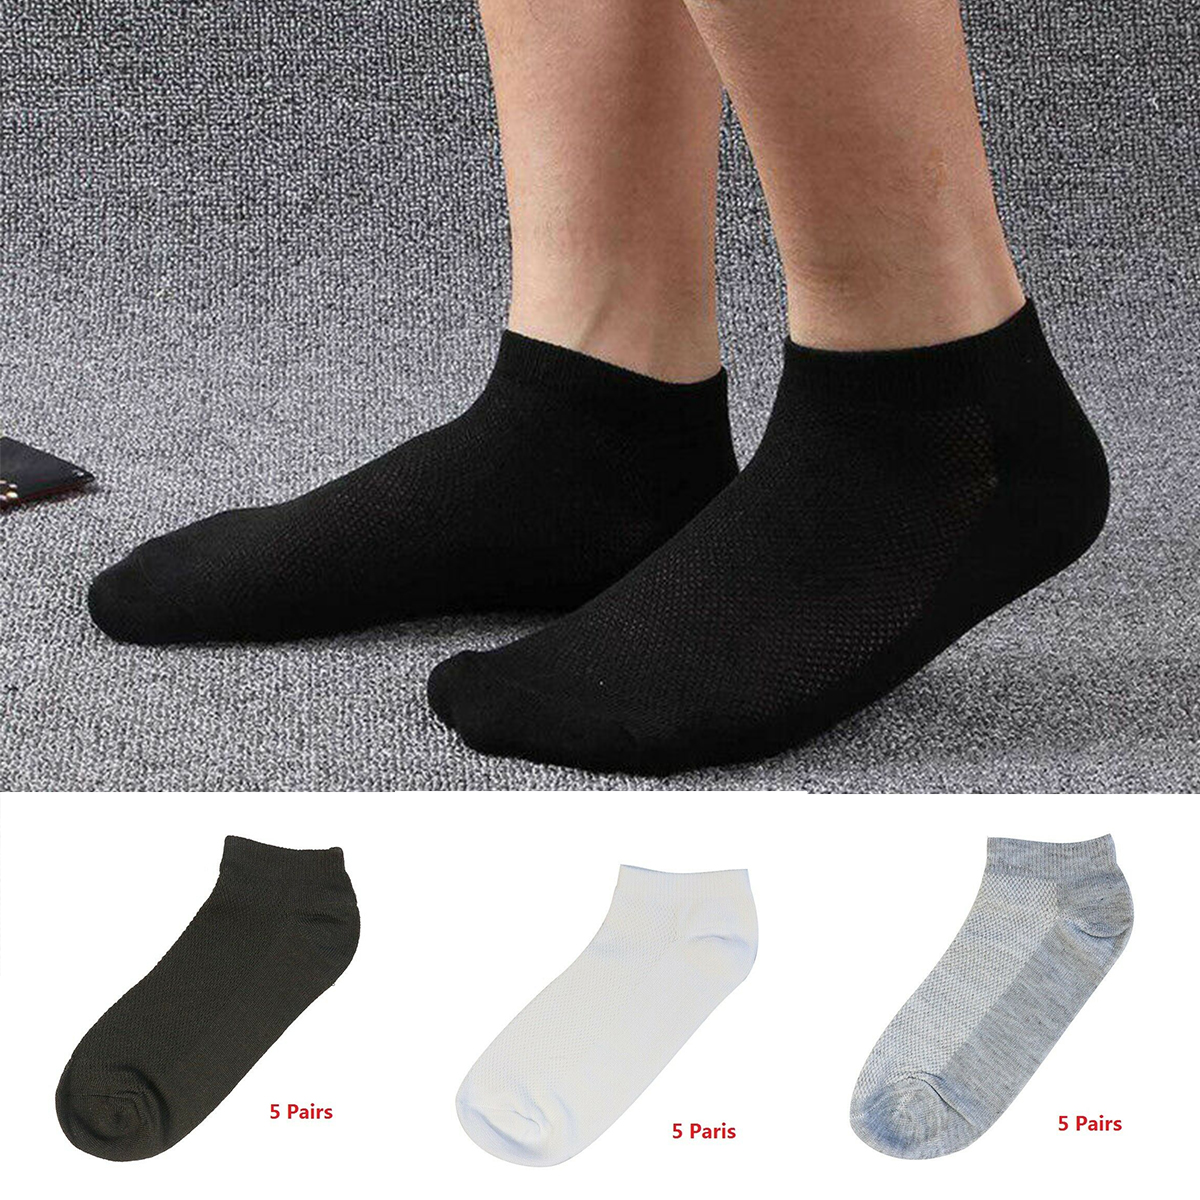 NEW 5 Pairs Ankle Crew Mens Socks Cotton low cut Casual Sport Multi Color Sock